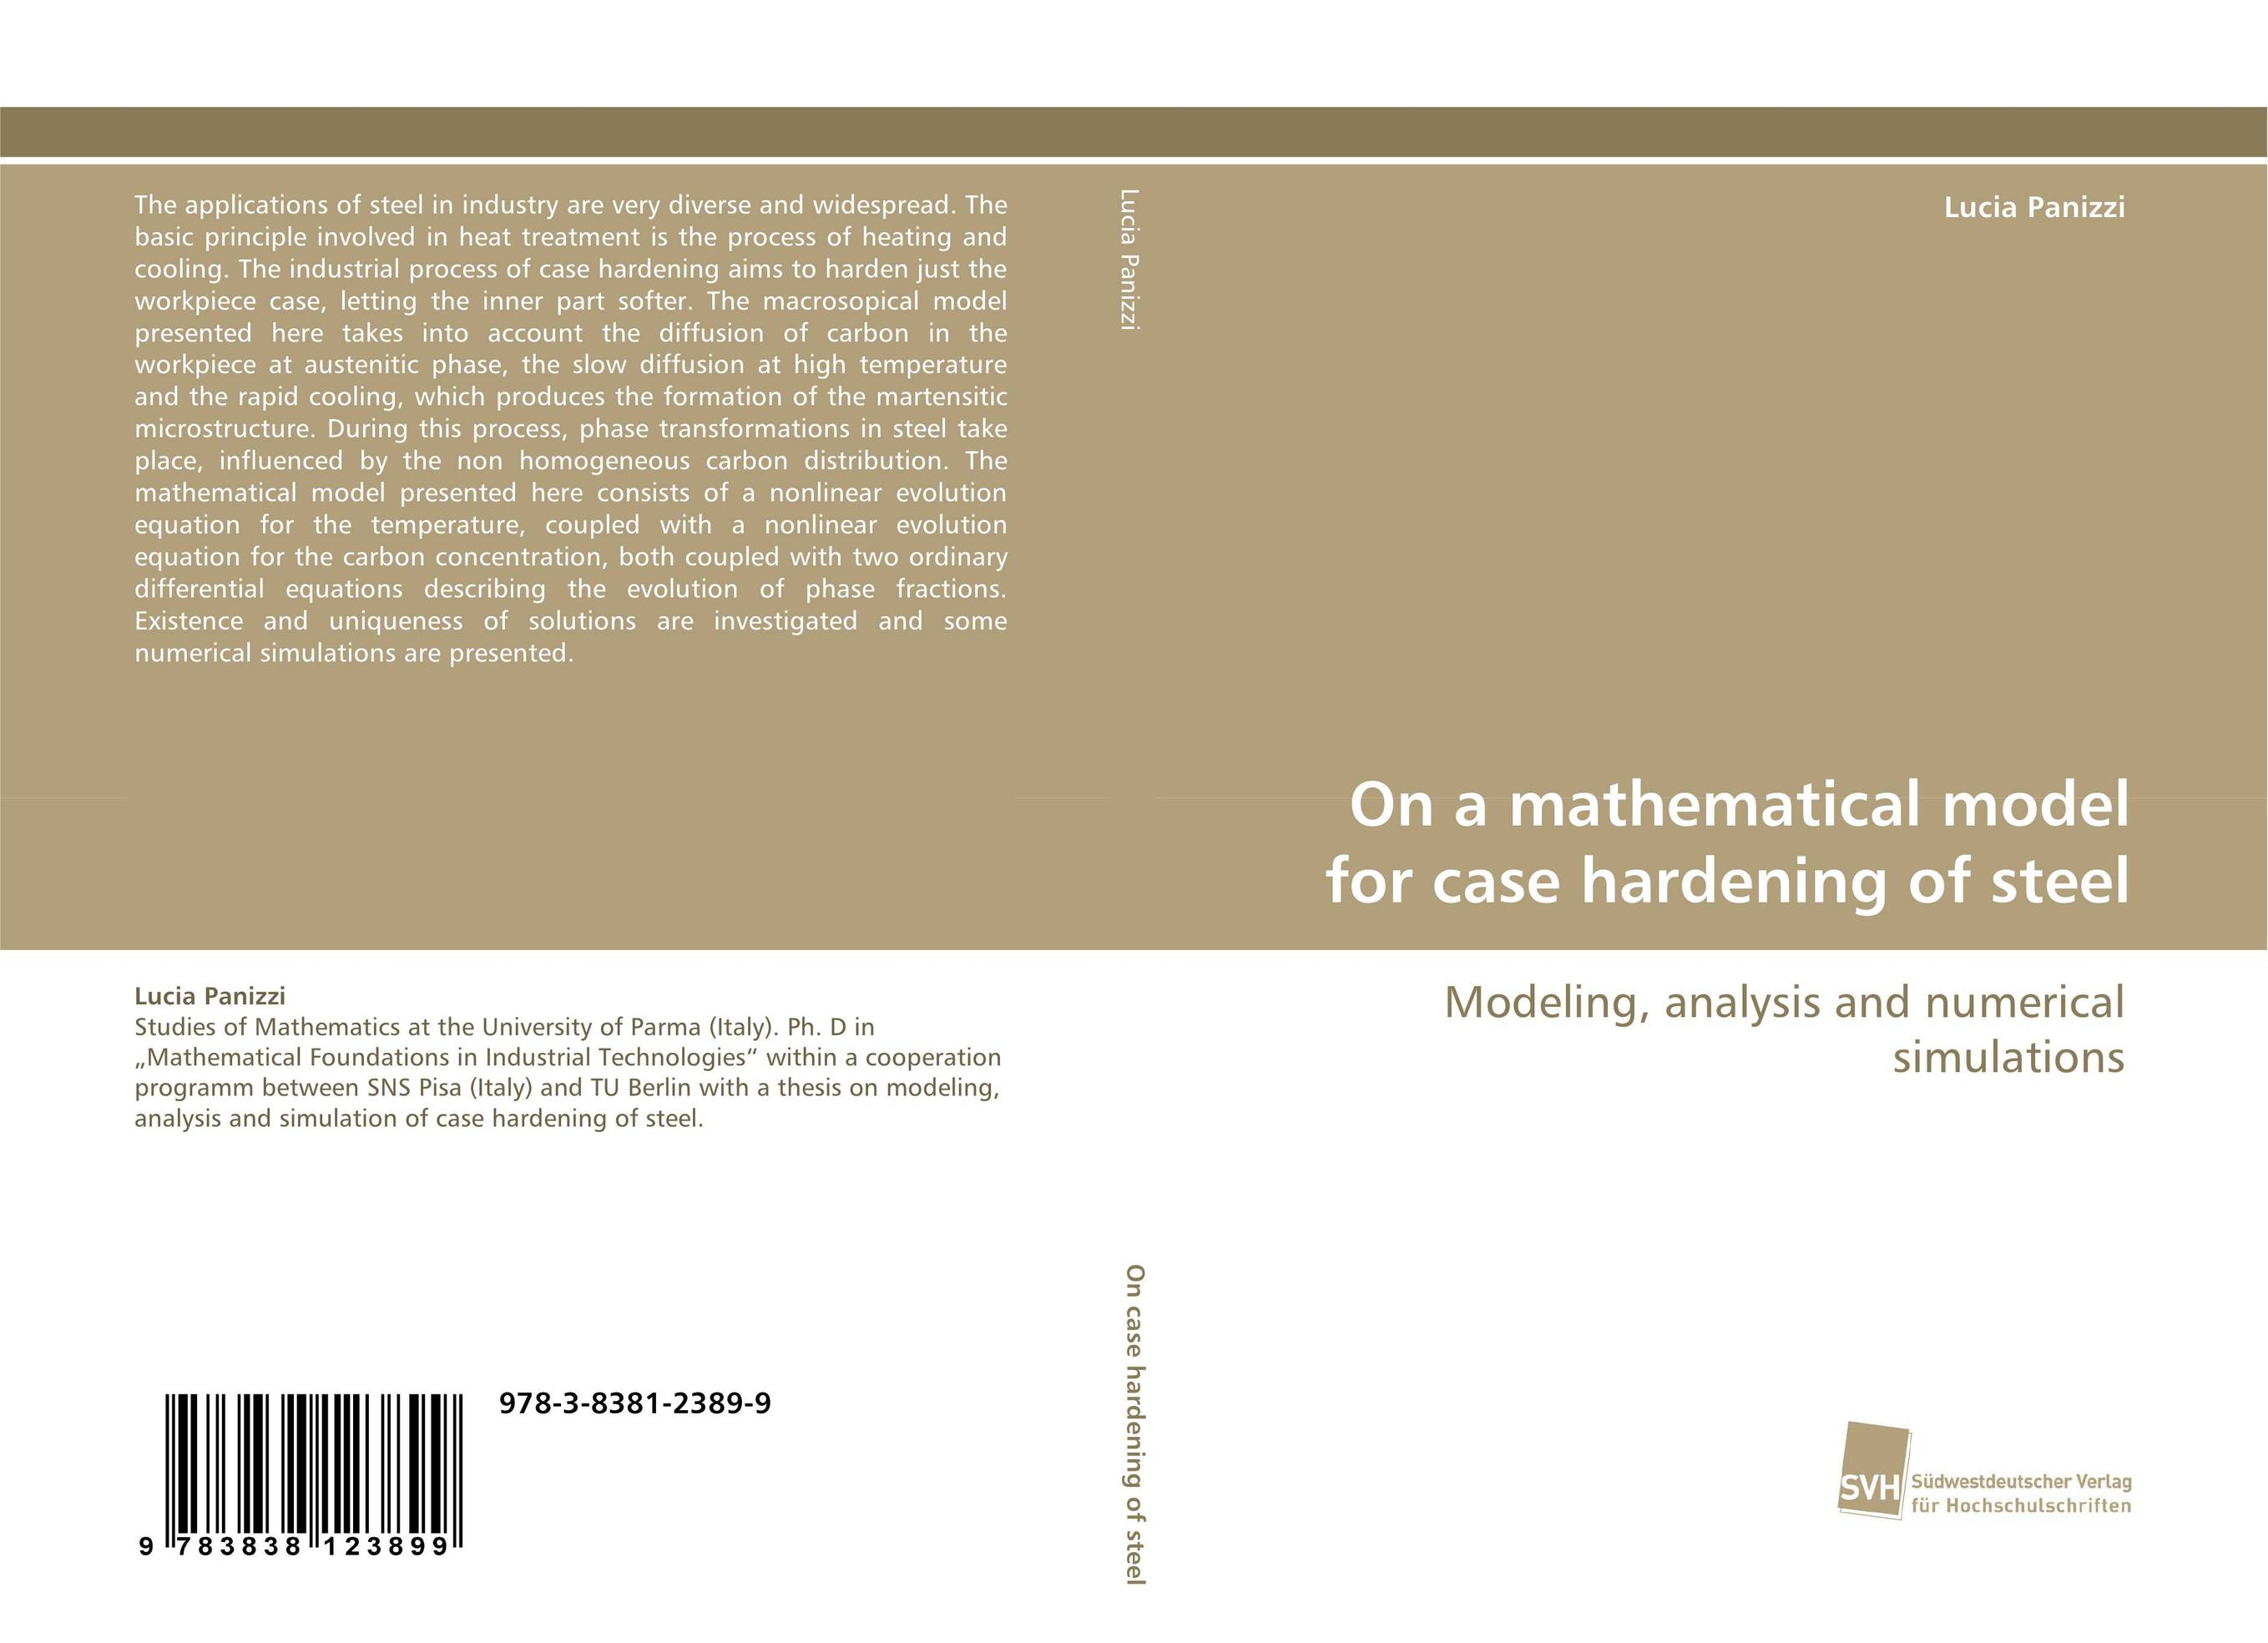 On a mathematical model for case hardening of steel